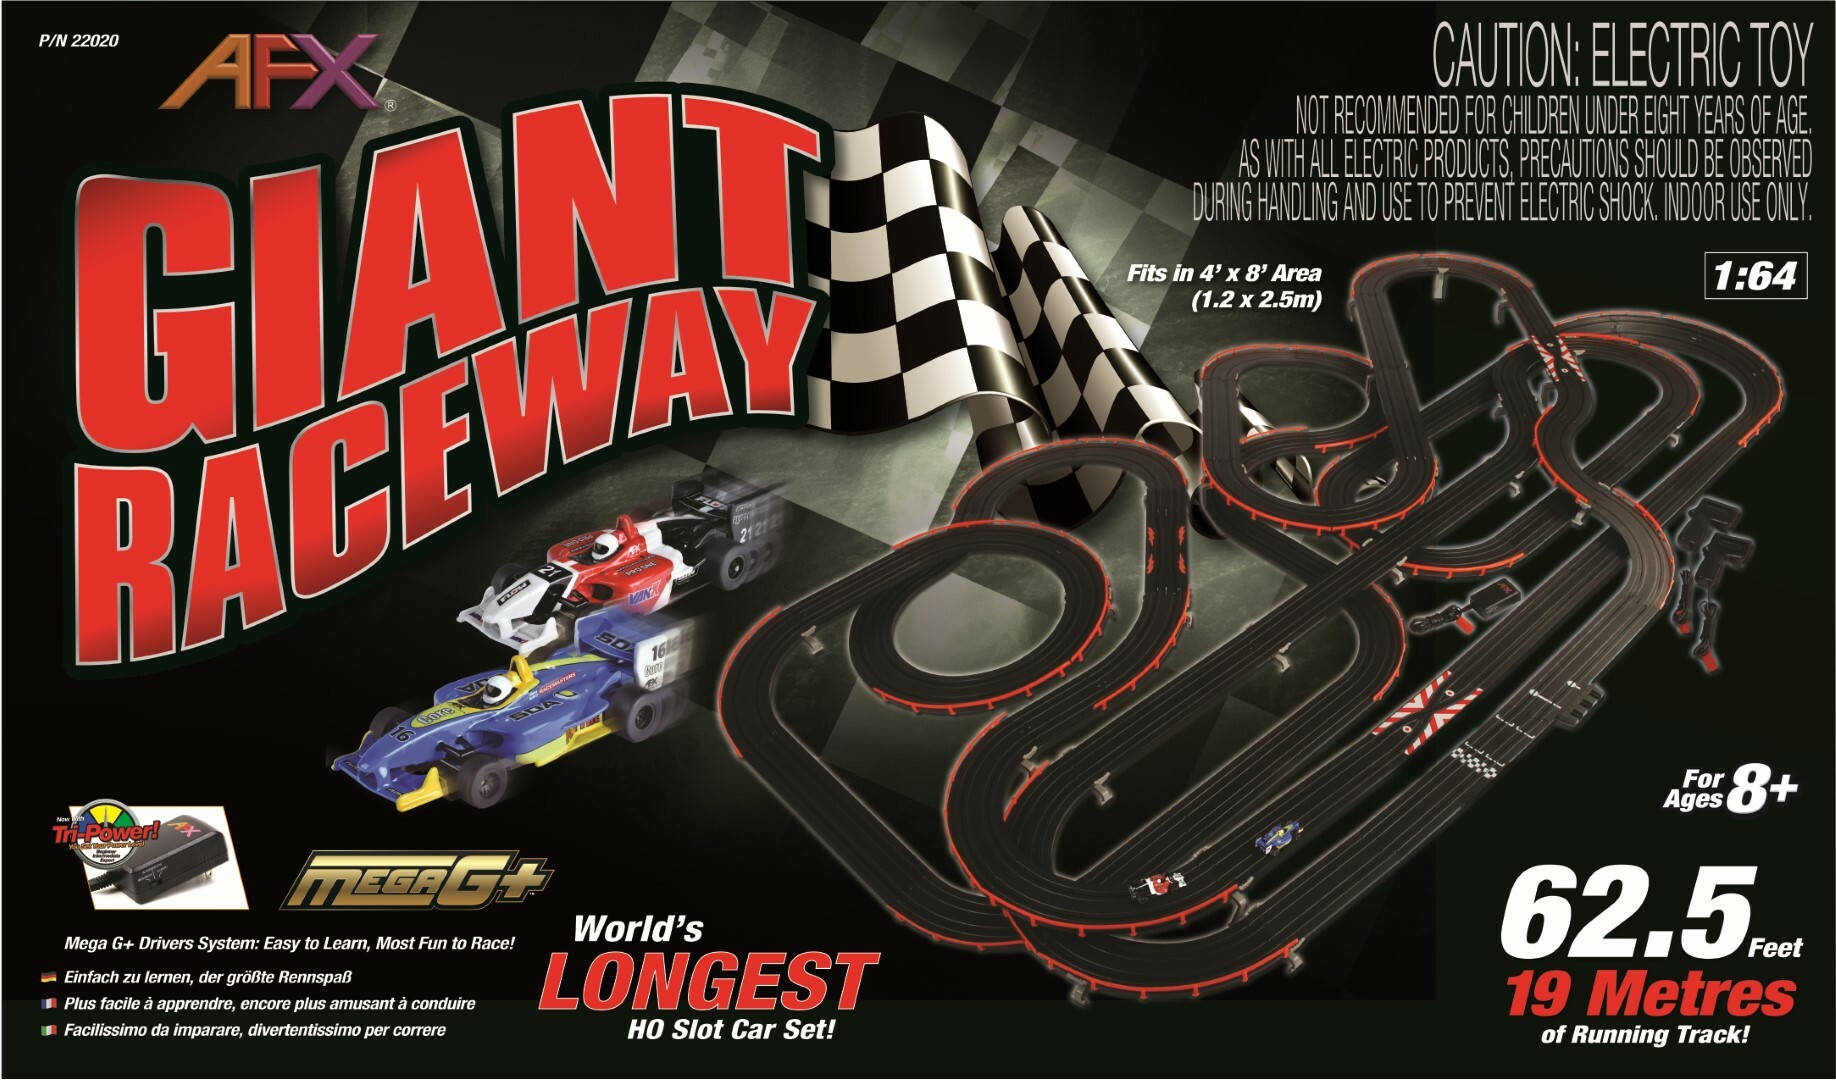 Best Choice Products Electric Slot Car Race Track Set Boy Kids Toy w/ 2 Battery Operated Cars, 2 Controllers, Customizable Courses, Degree Loops, Working Lights out of 5 stars 22 $ $ .